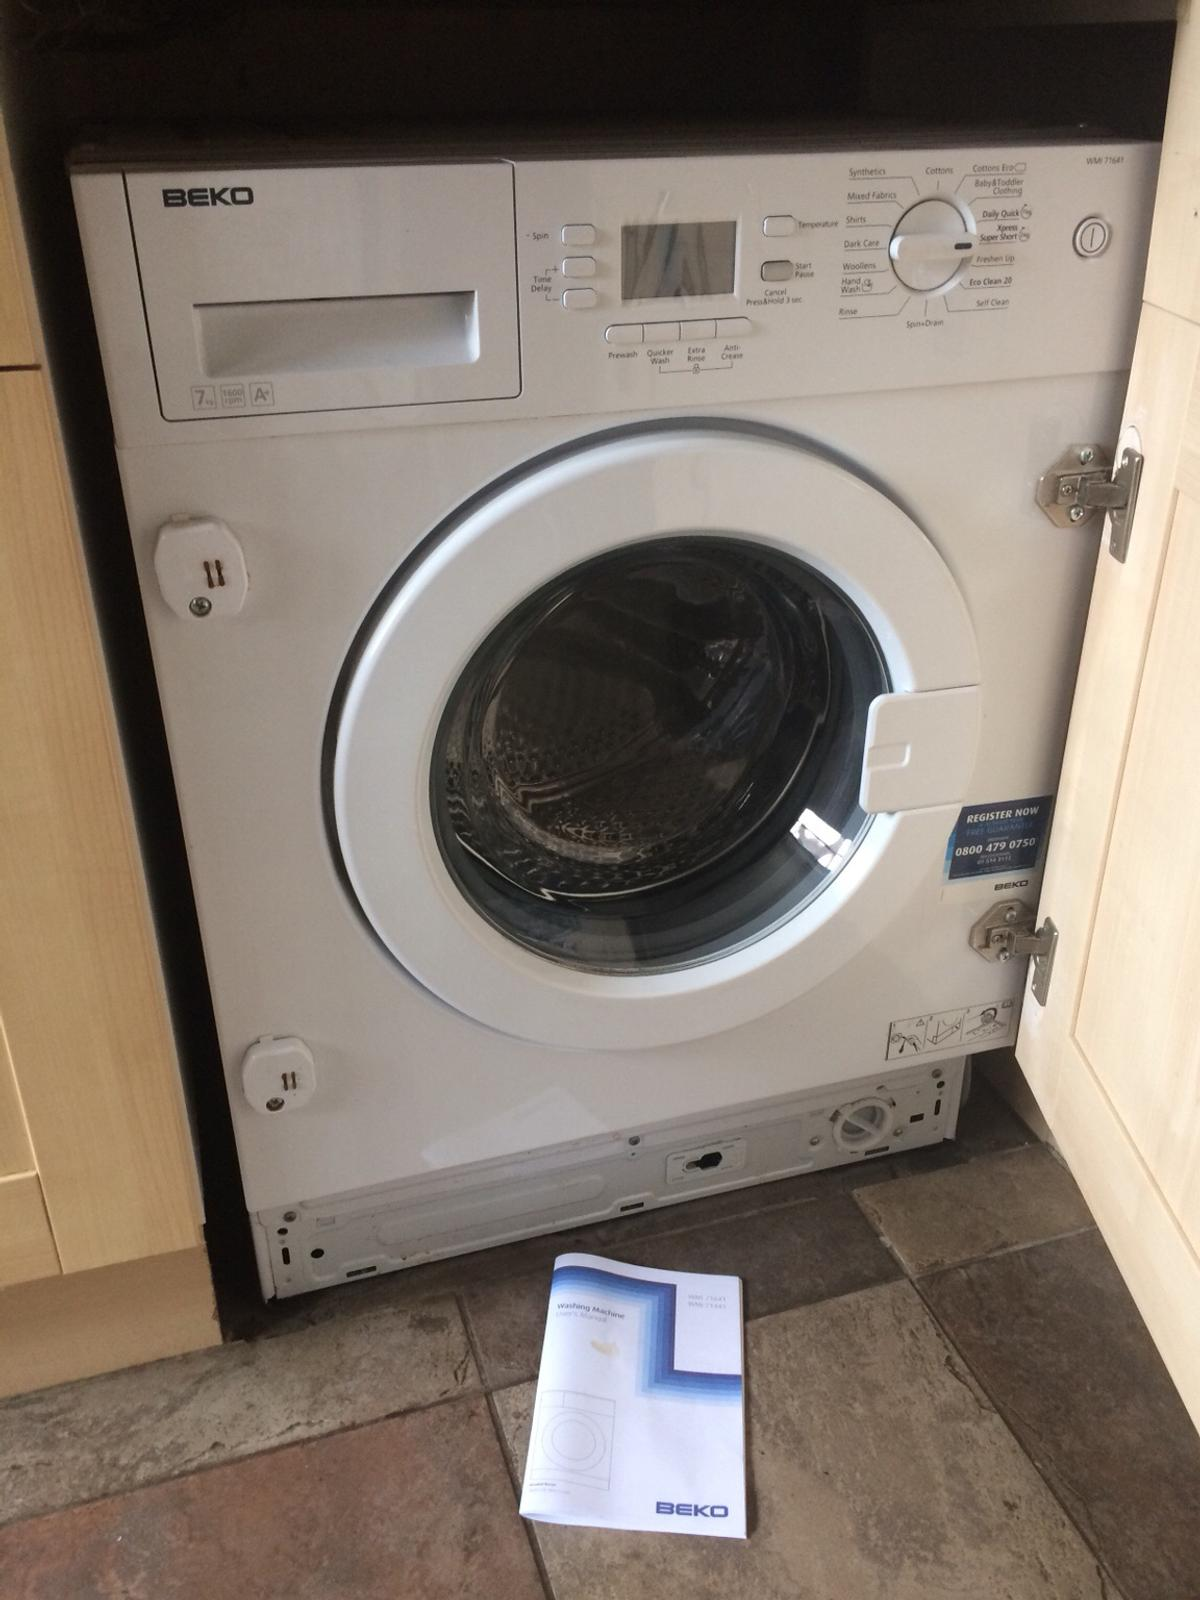 Washing Machine BEKO WMI 71641 7kg in DE24 South Derbyshire